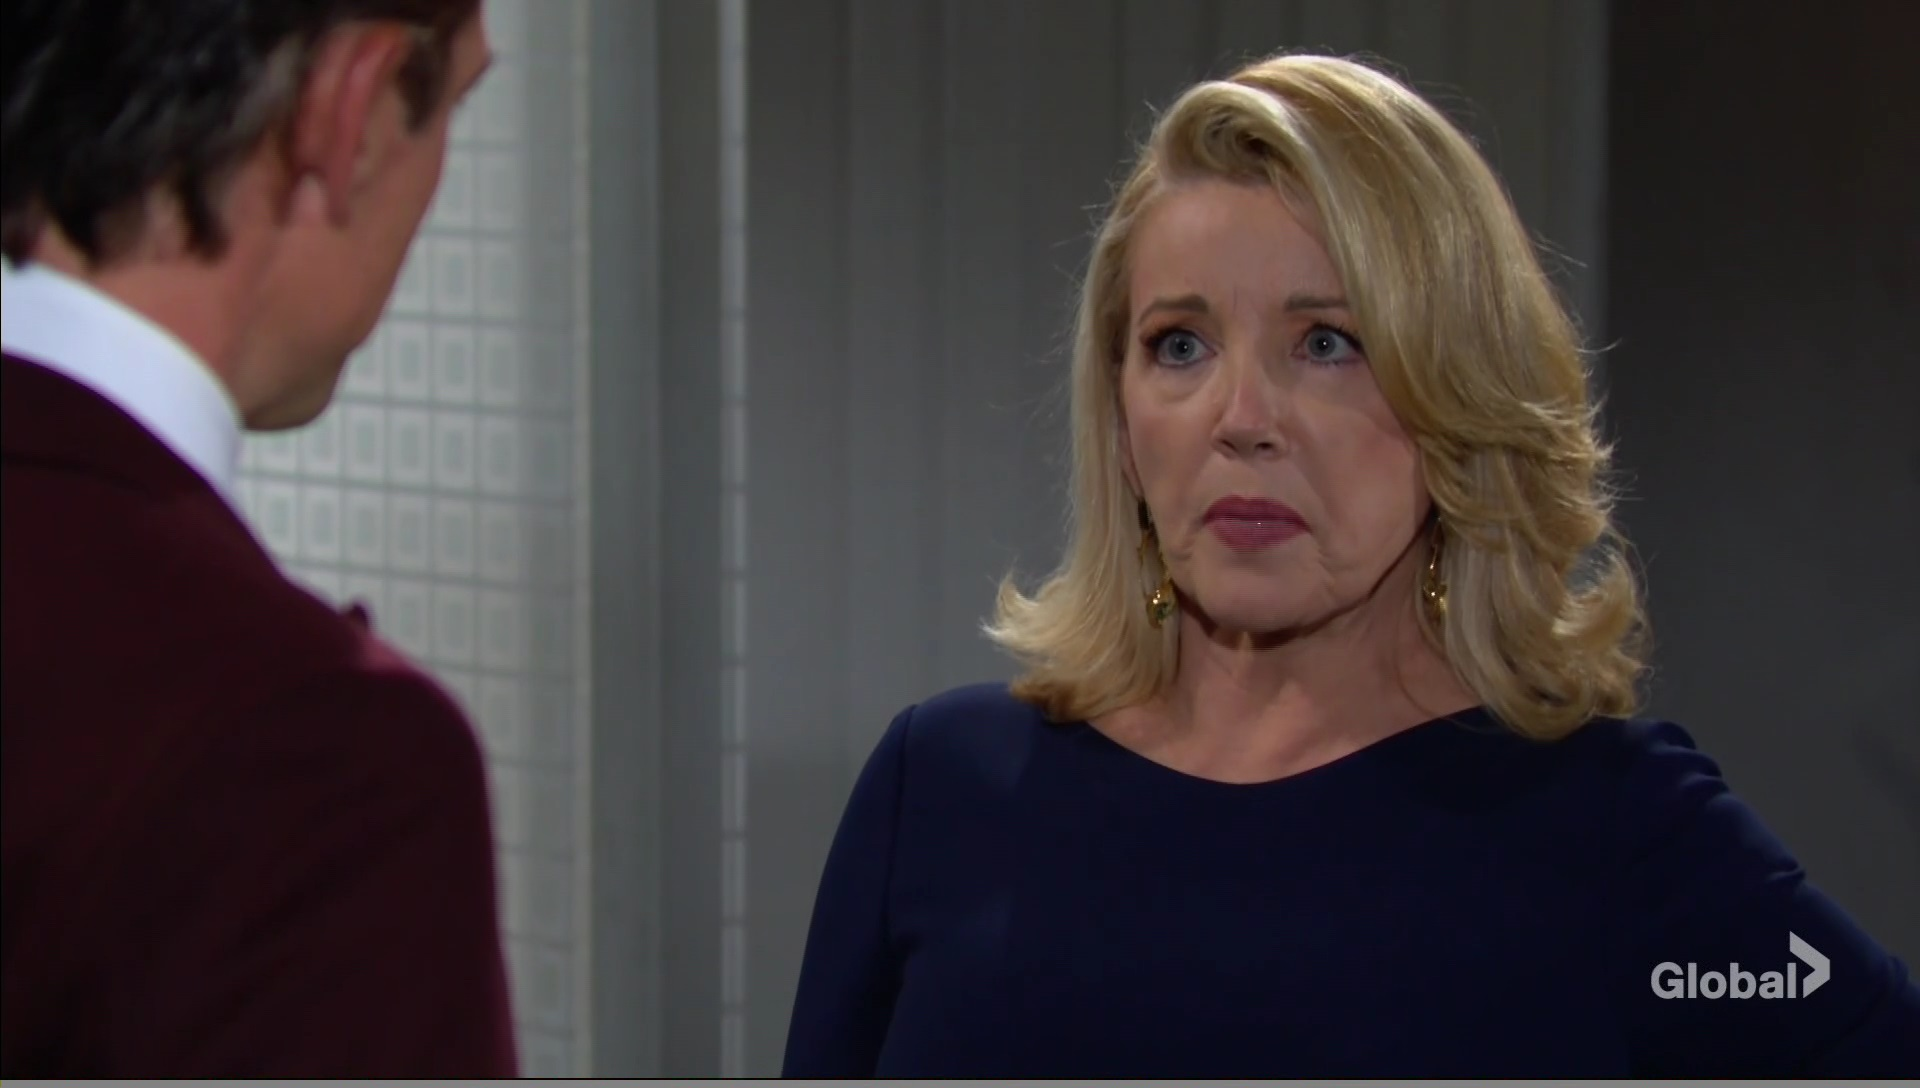 nikki sneers billy young and the restless cbs